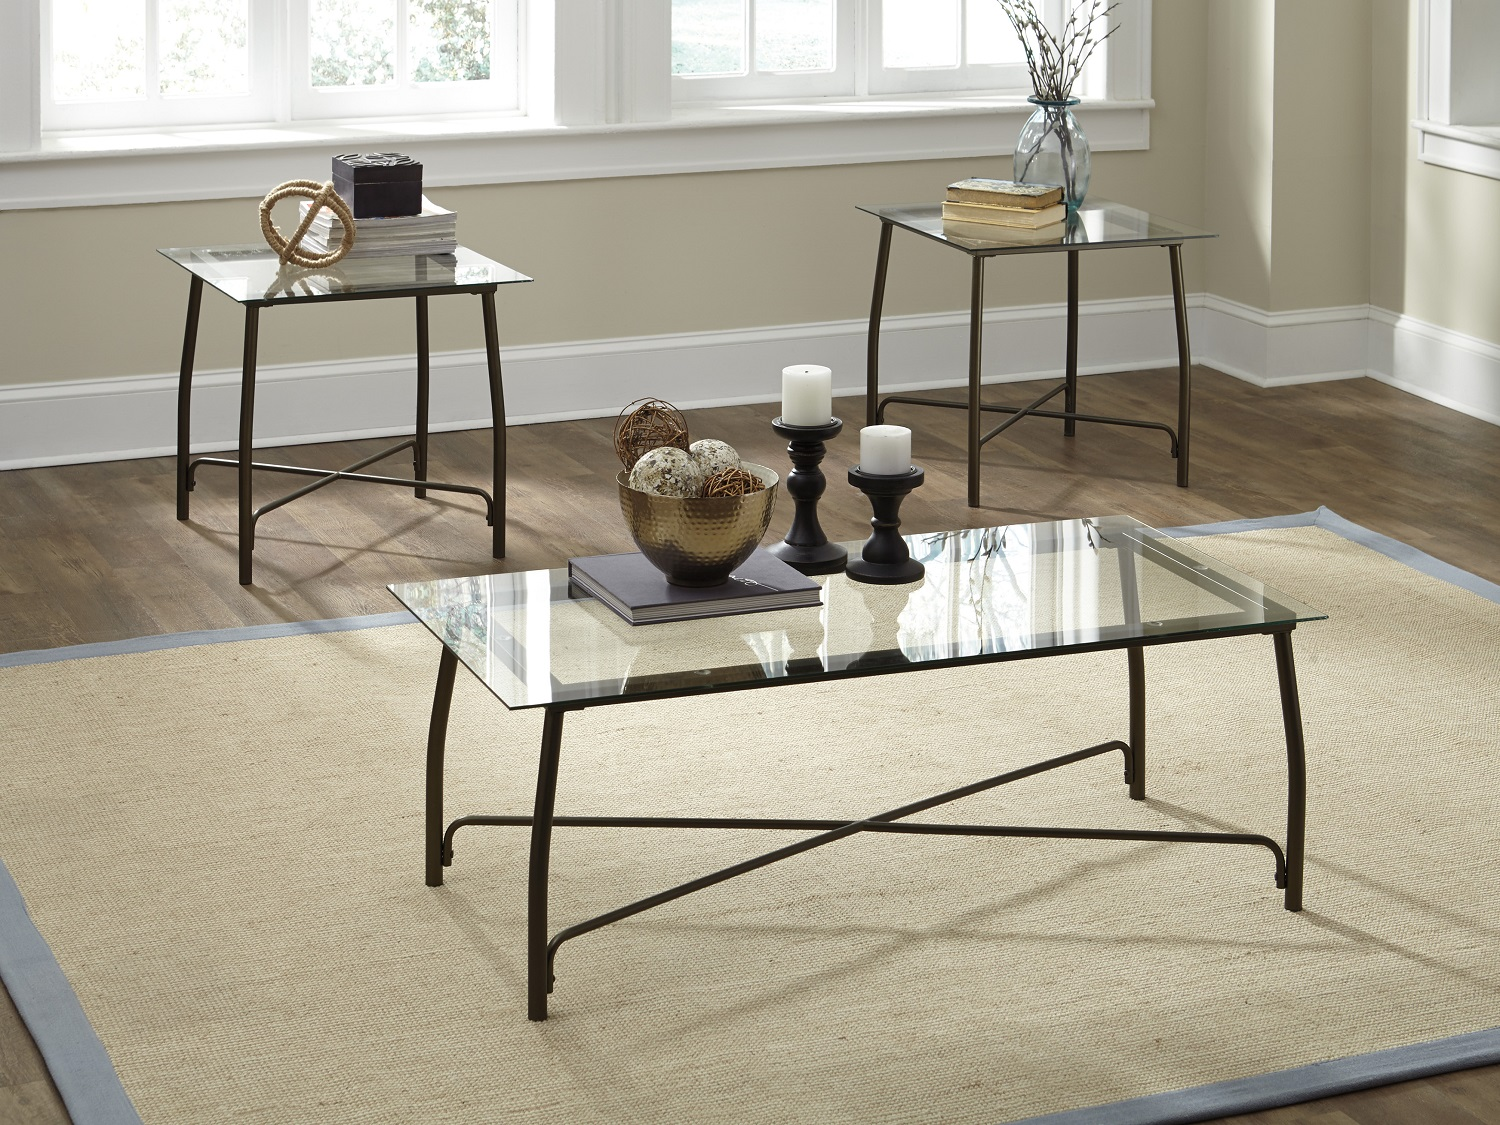 Burmesque, T004-13, Coffee Table by Midha Furniture to Brampton, Mississauga, Etobicoke, Toronto, Scraborough, Caledon, Oakville, Markham, Ajax, Pickering, Oshawa, Richmondhill, Kitchener, Hamilton and GTA area